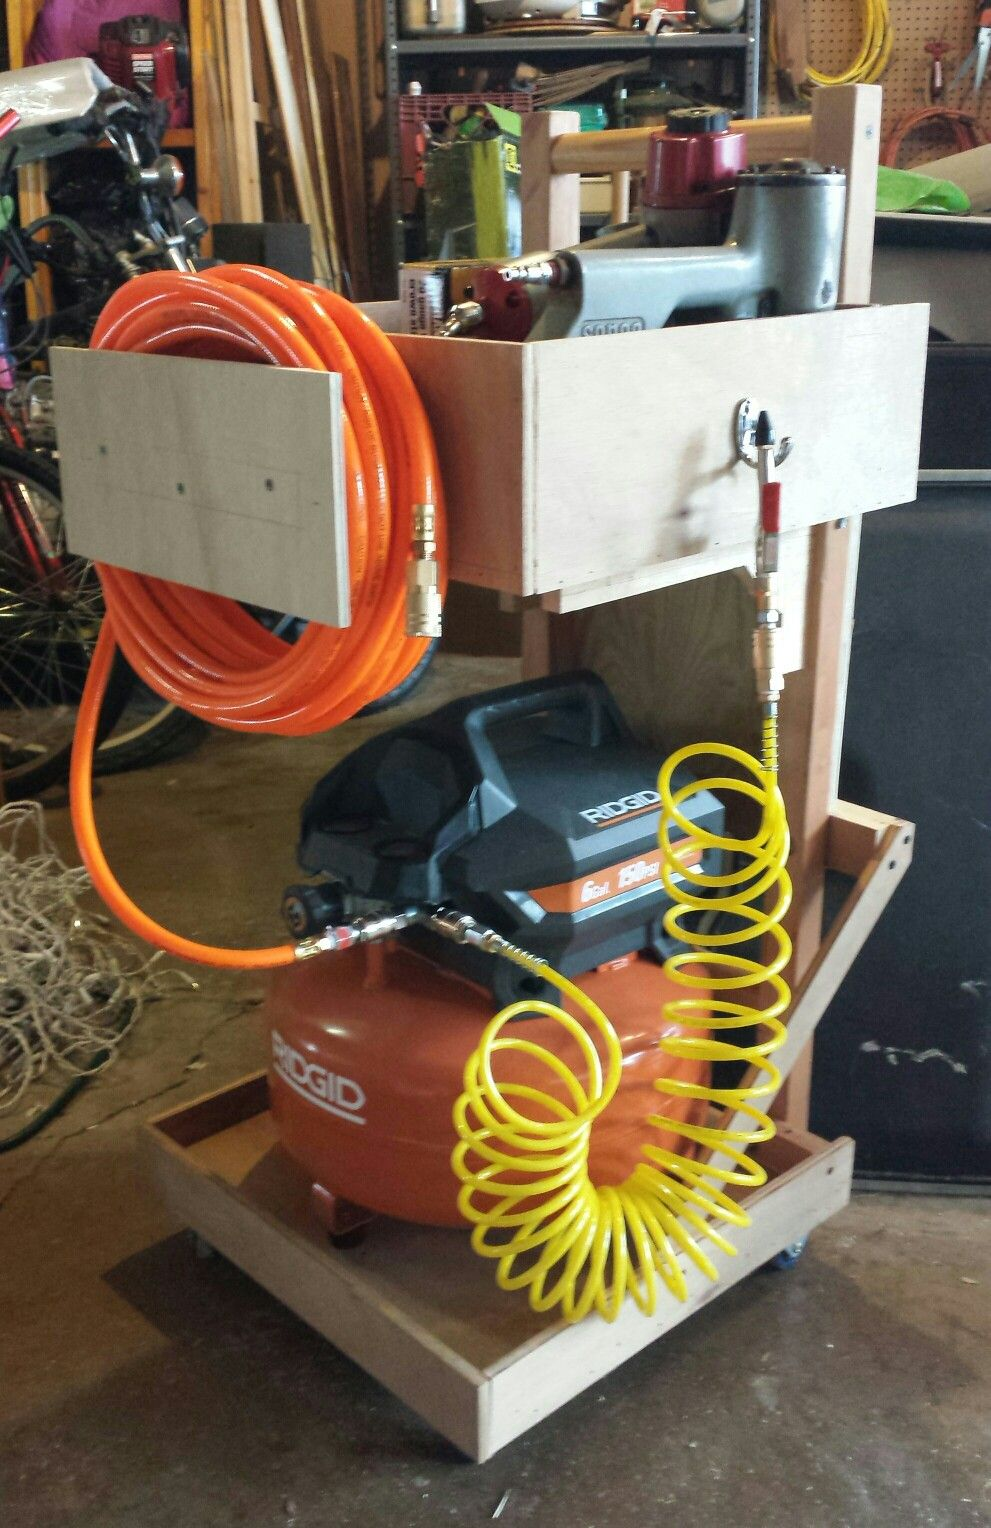 Build an air compressor cart out of spare lumber for less